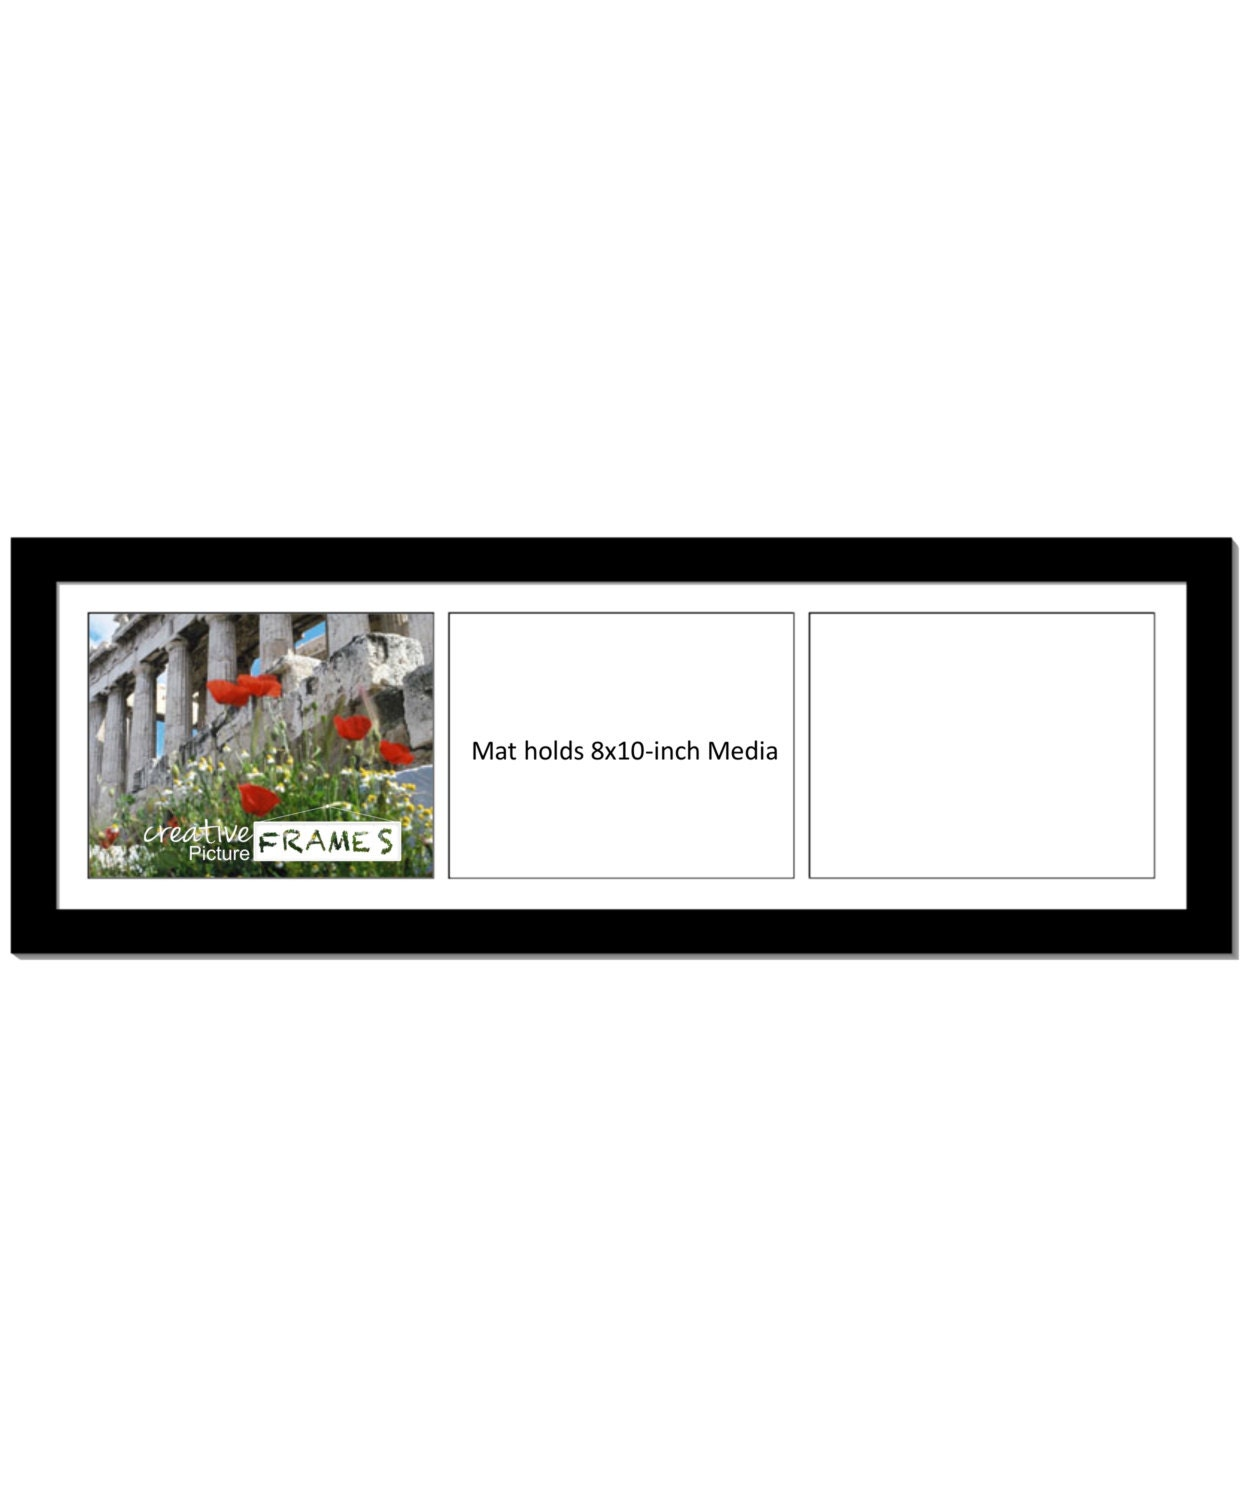 8x10 Inch 3 Opening Mat With 12 By 34 Inch Picture Frame